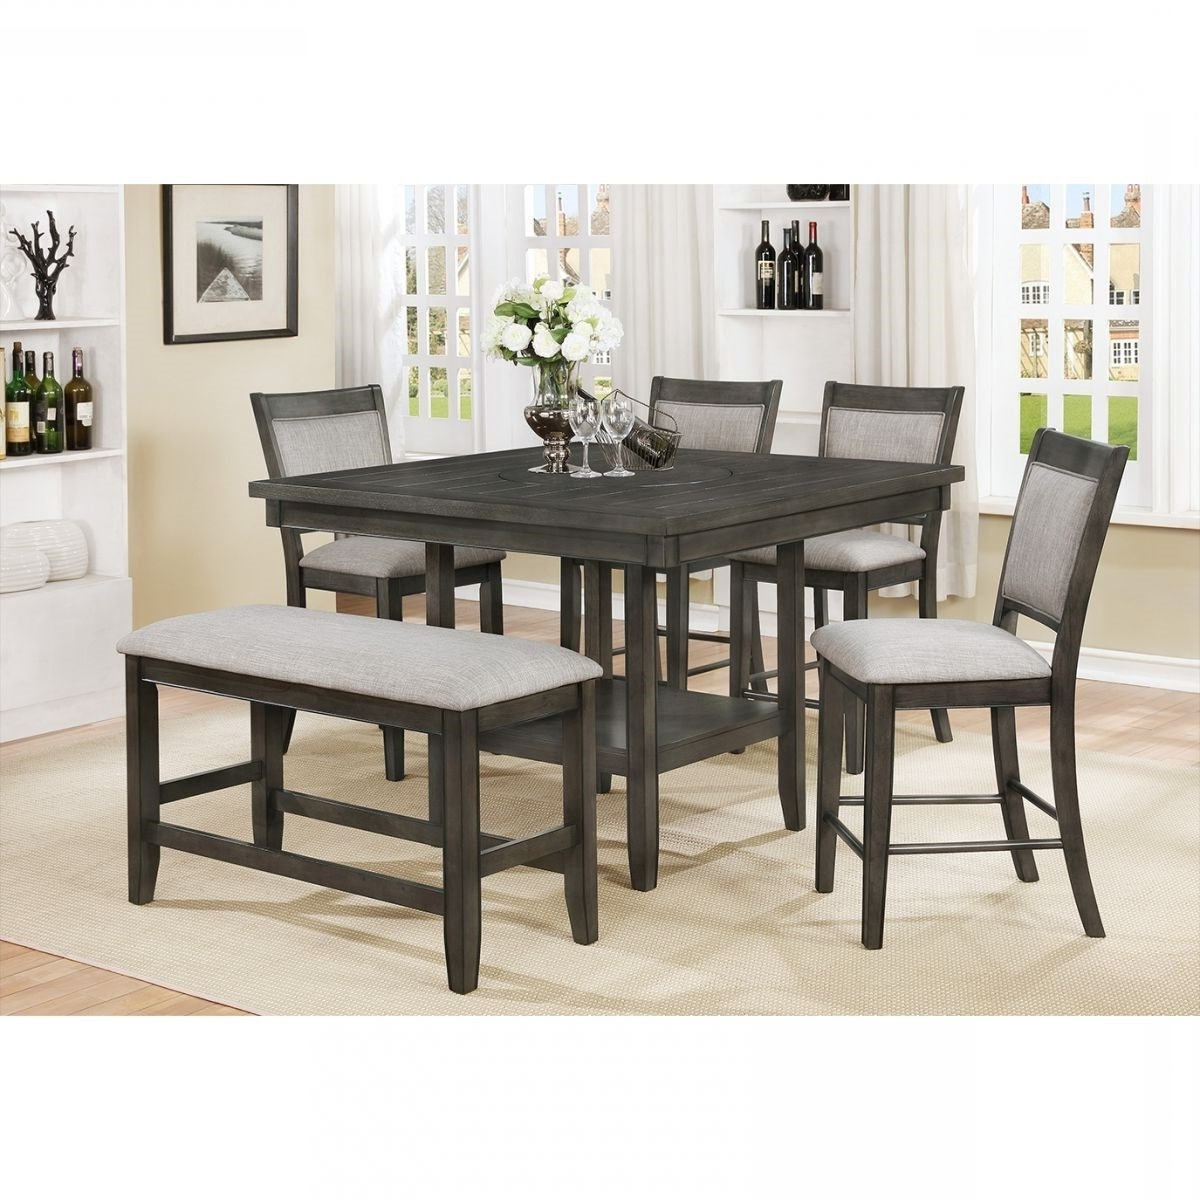 Fulton Gray 6 Pc Counter Height Dining Room (View 15 of 25)